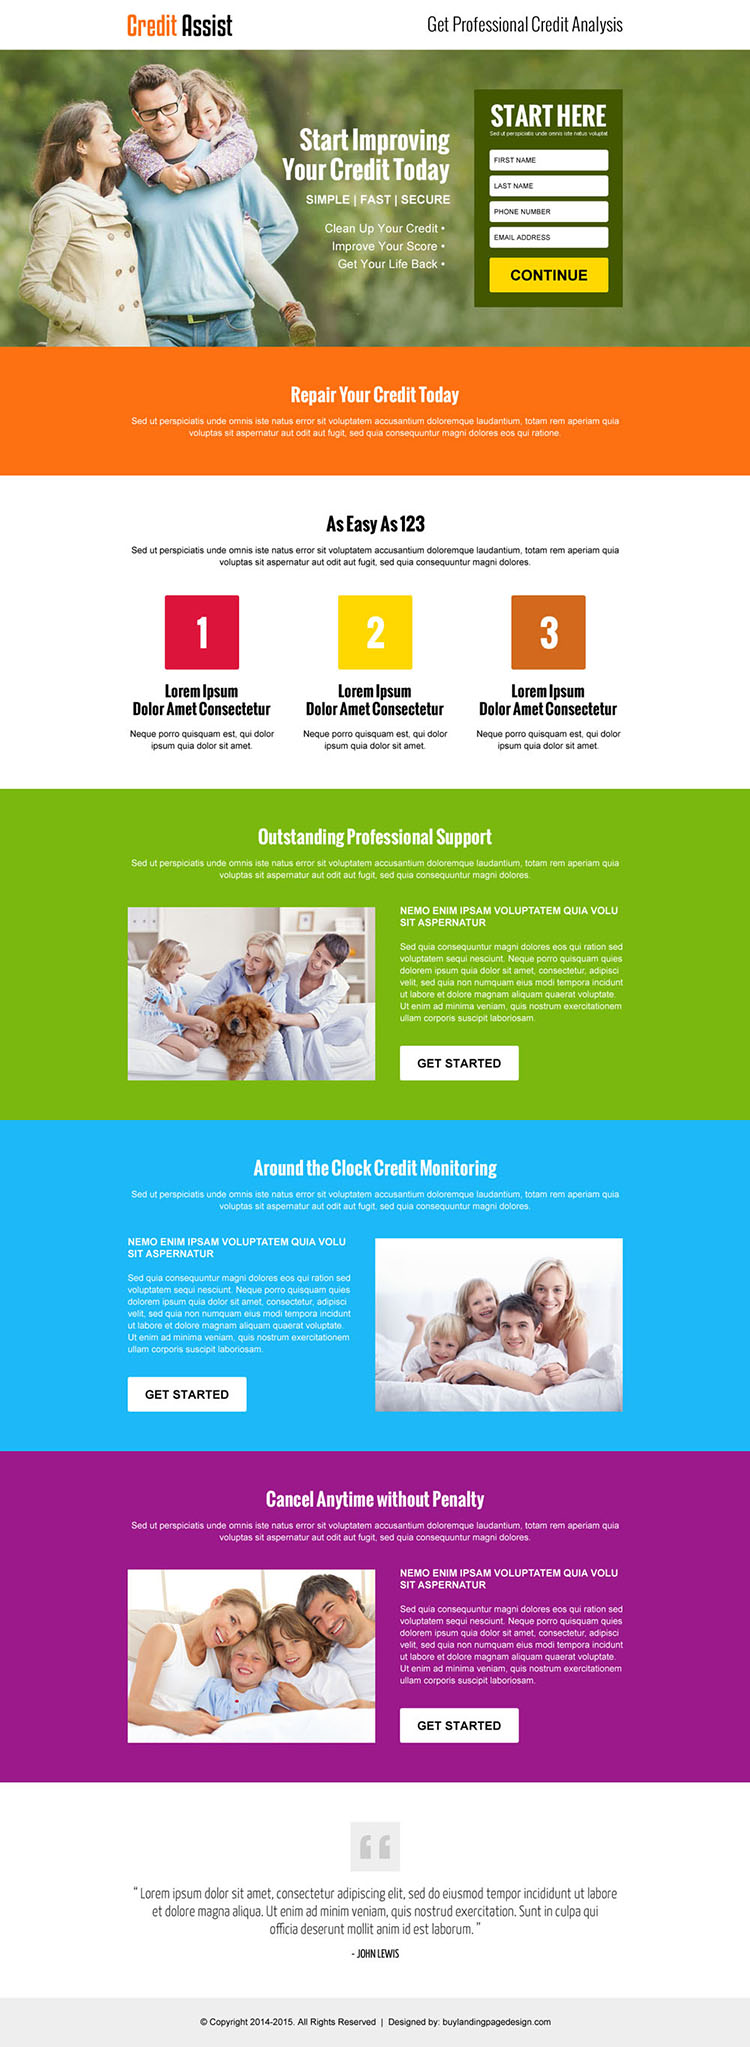 credit assist service small lead capture landing page design